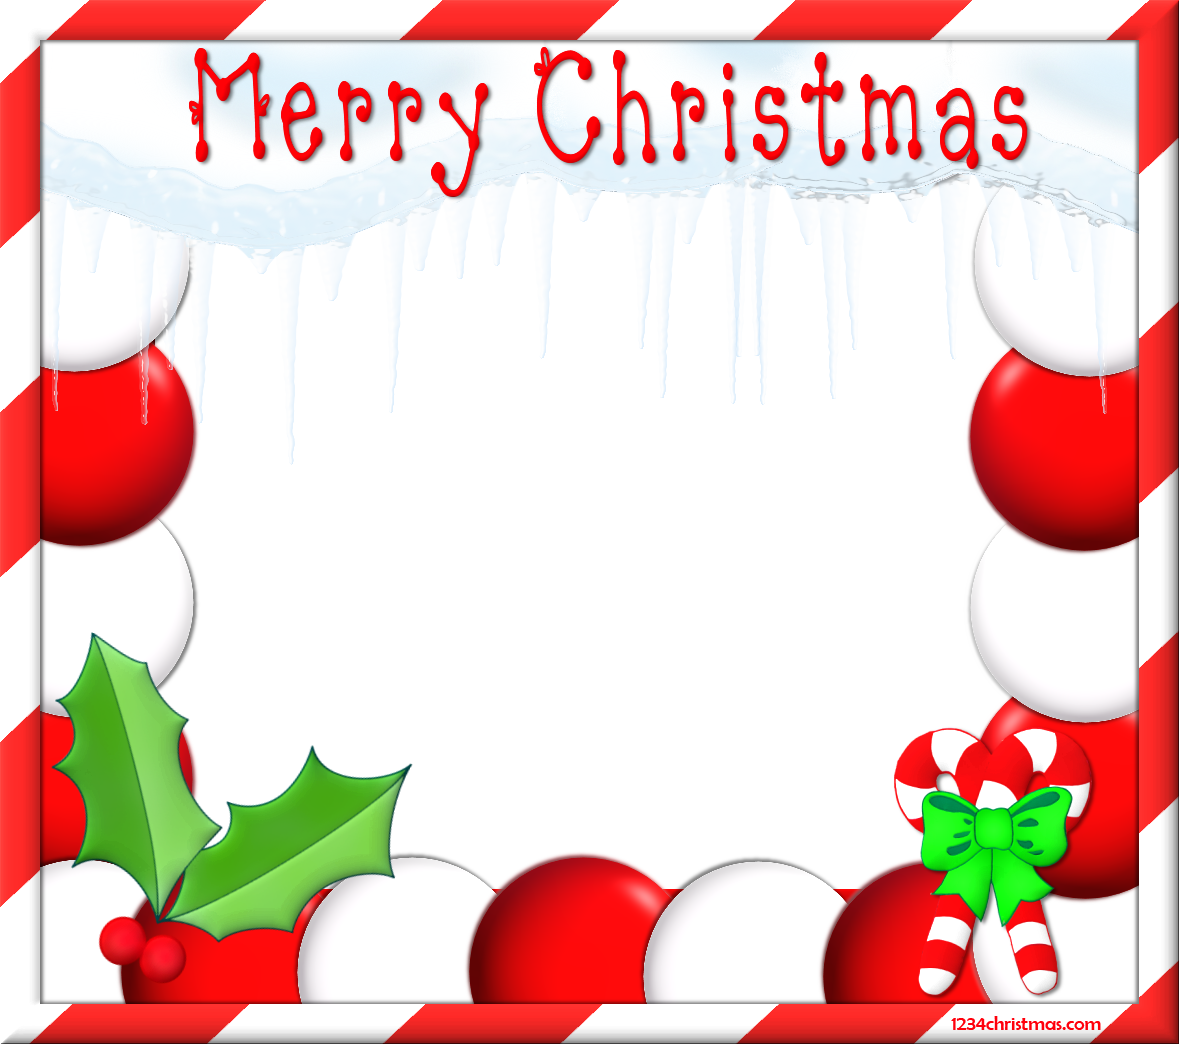 Christmas top border clipart vector library stock Christmas Photo Frame Templates for FREE Download vector library stock